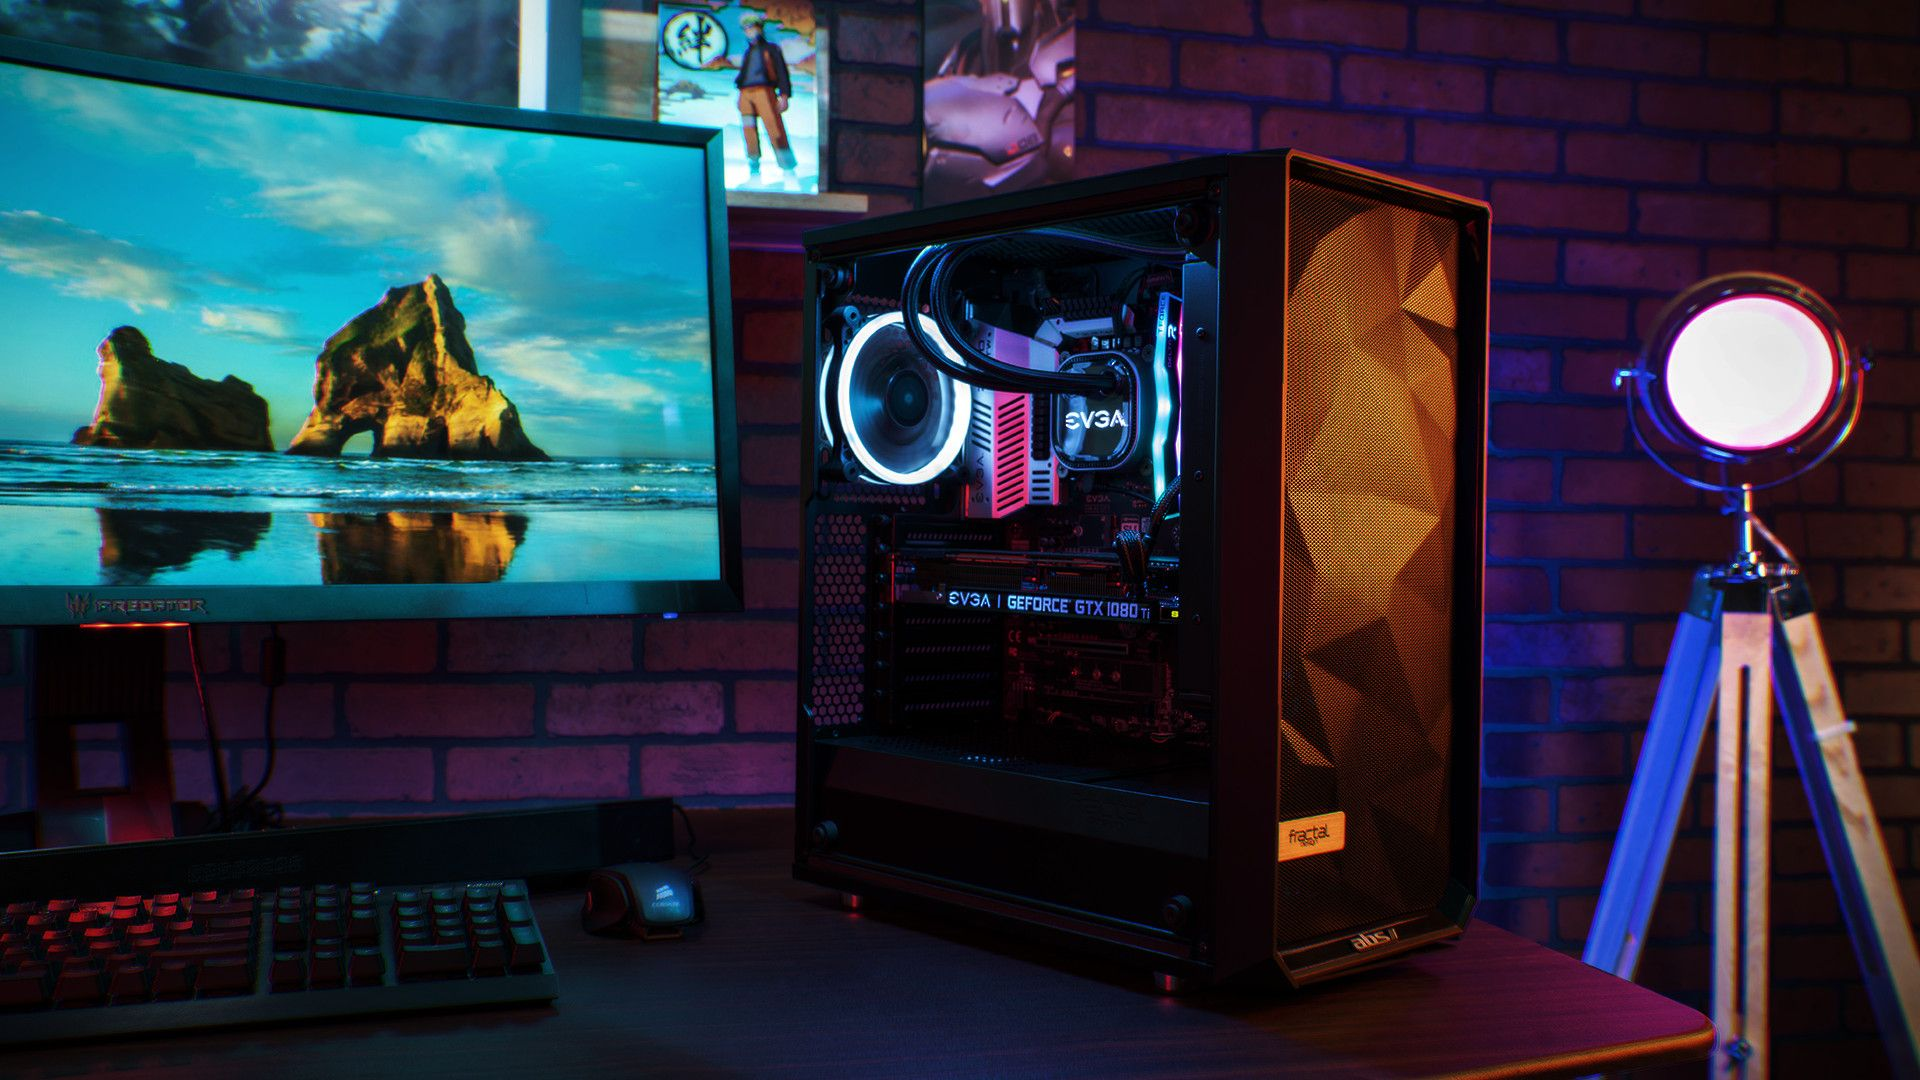 Best Gaming Pc Cases Under 500 Pcmr Thermaltake Gaming Pc